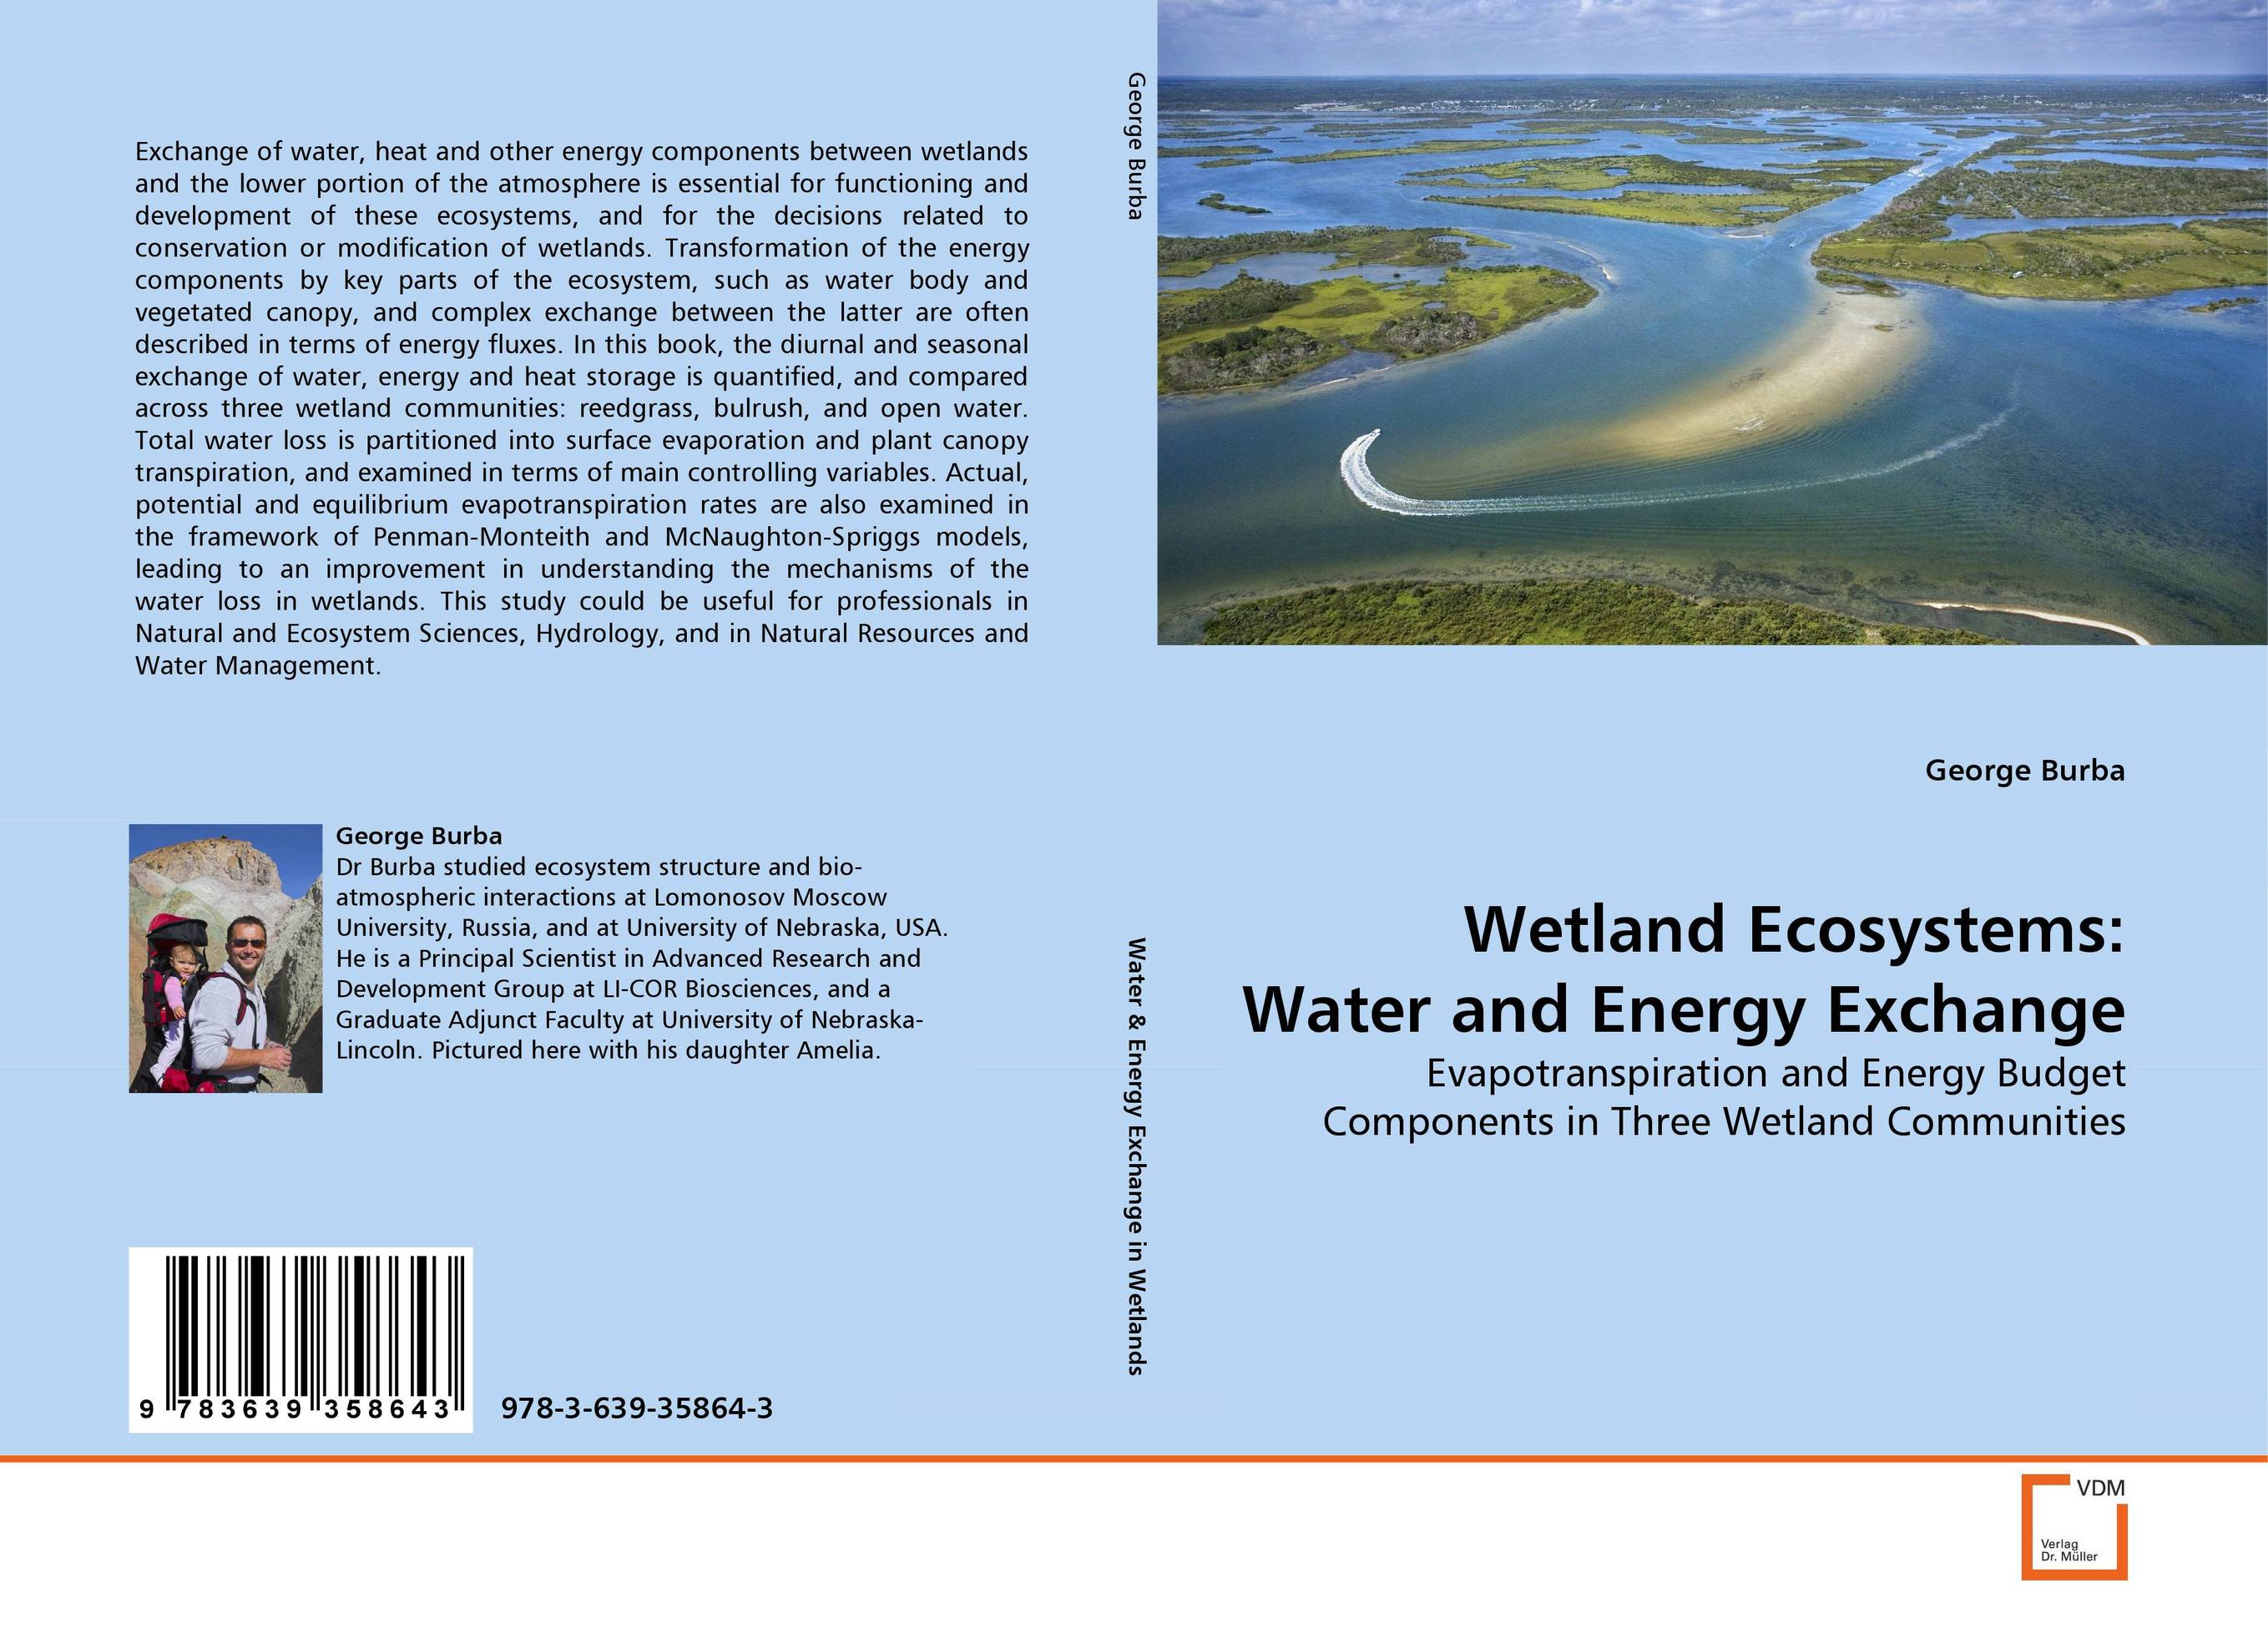 Wetland Ecosystems: Water and Energy Exchange bride of the water god v 3